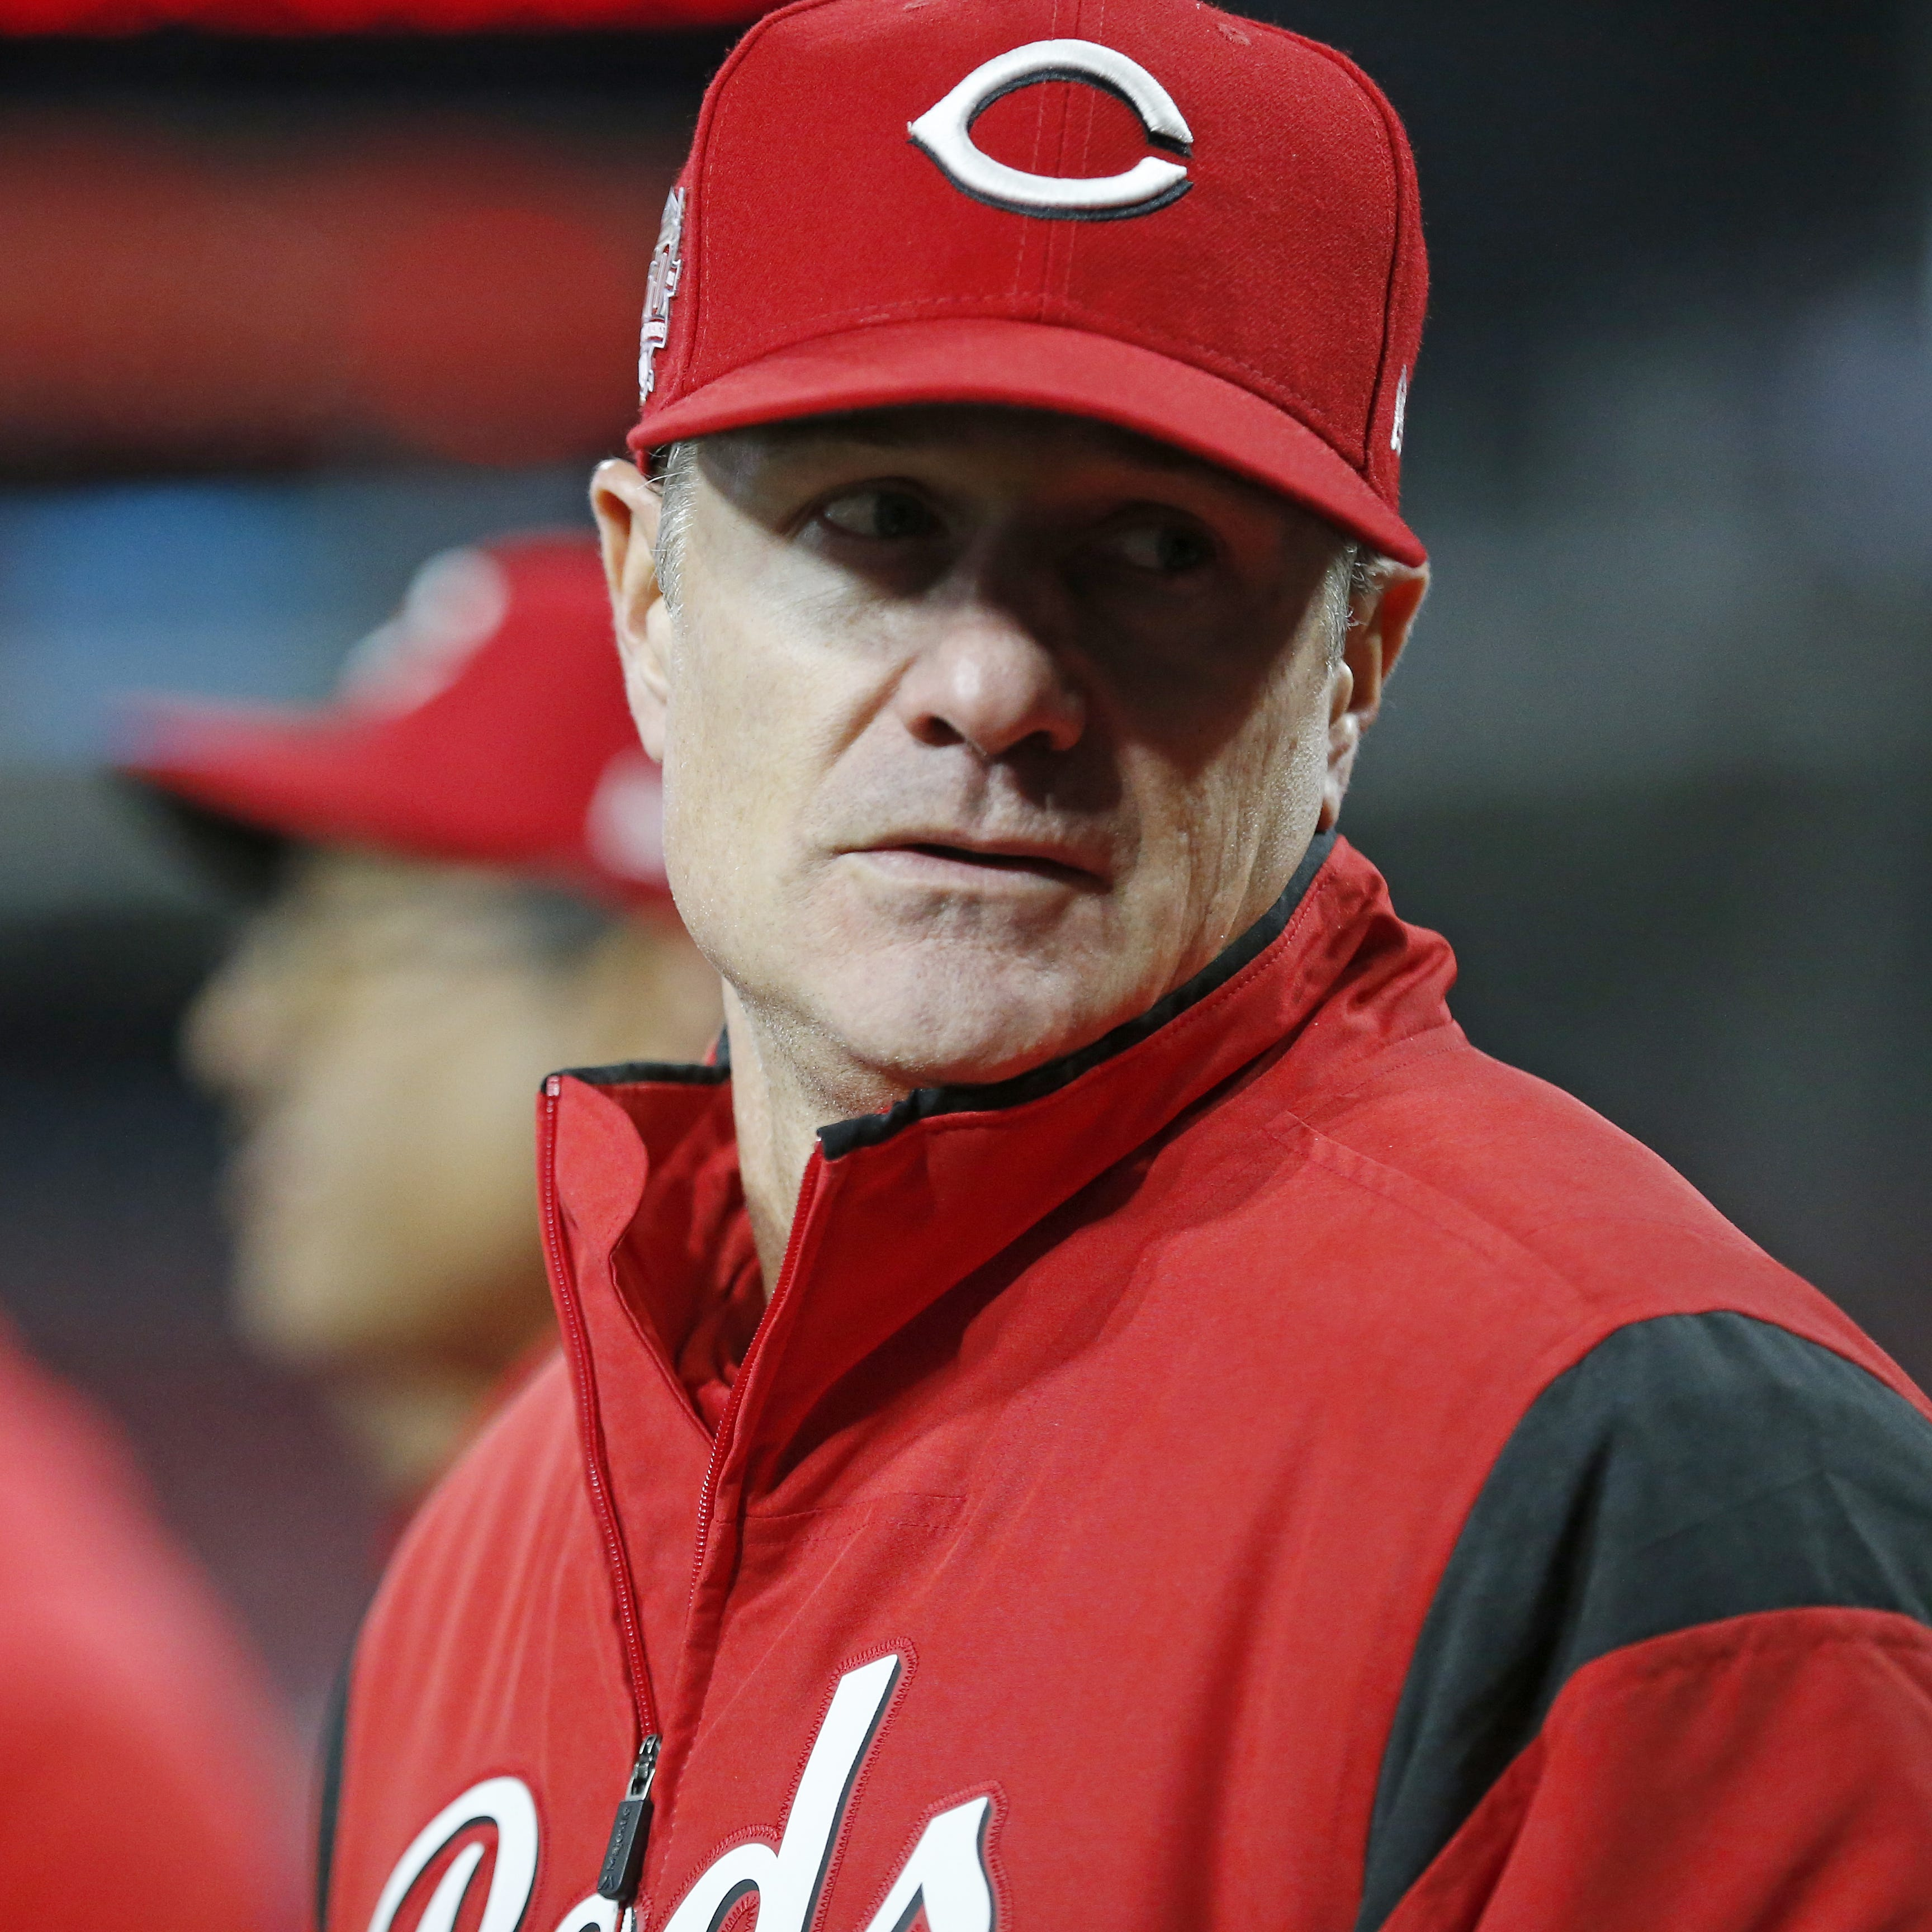 Doc's Morning Line: Yes, David Bell can outthink himself. He's only managed 42 games.